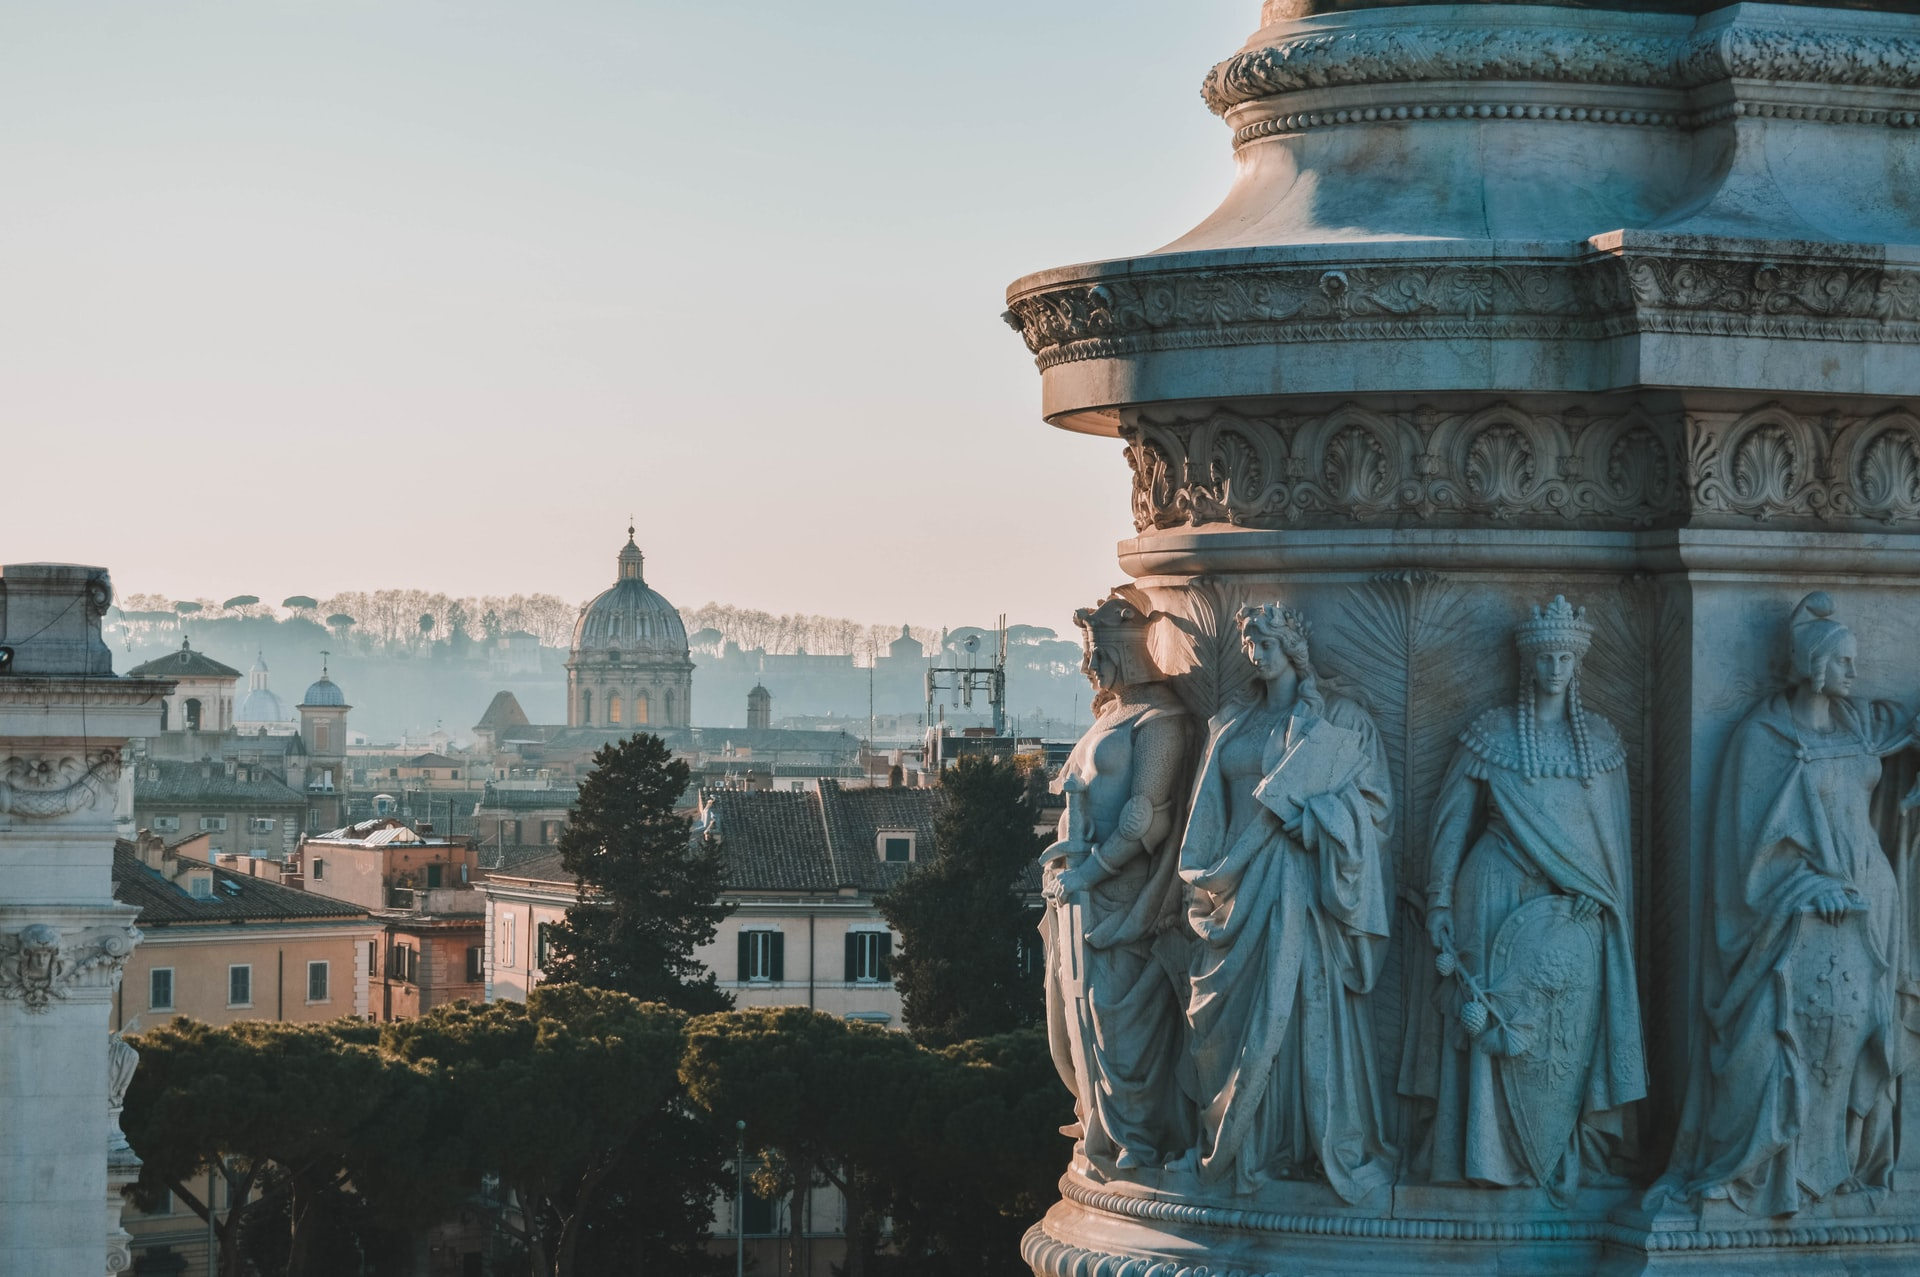 Statues of people carved into a building in Rome, Italy. Photo courtesy of Carlos Ibáñez on Unsplash.